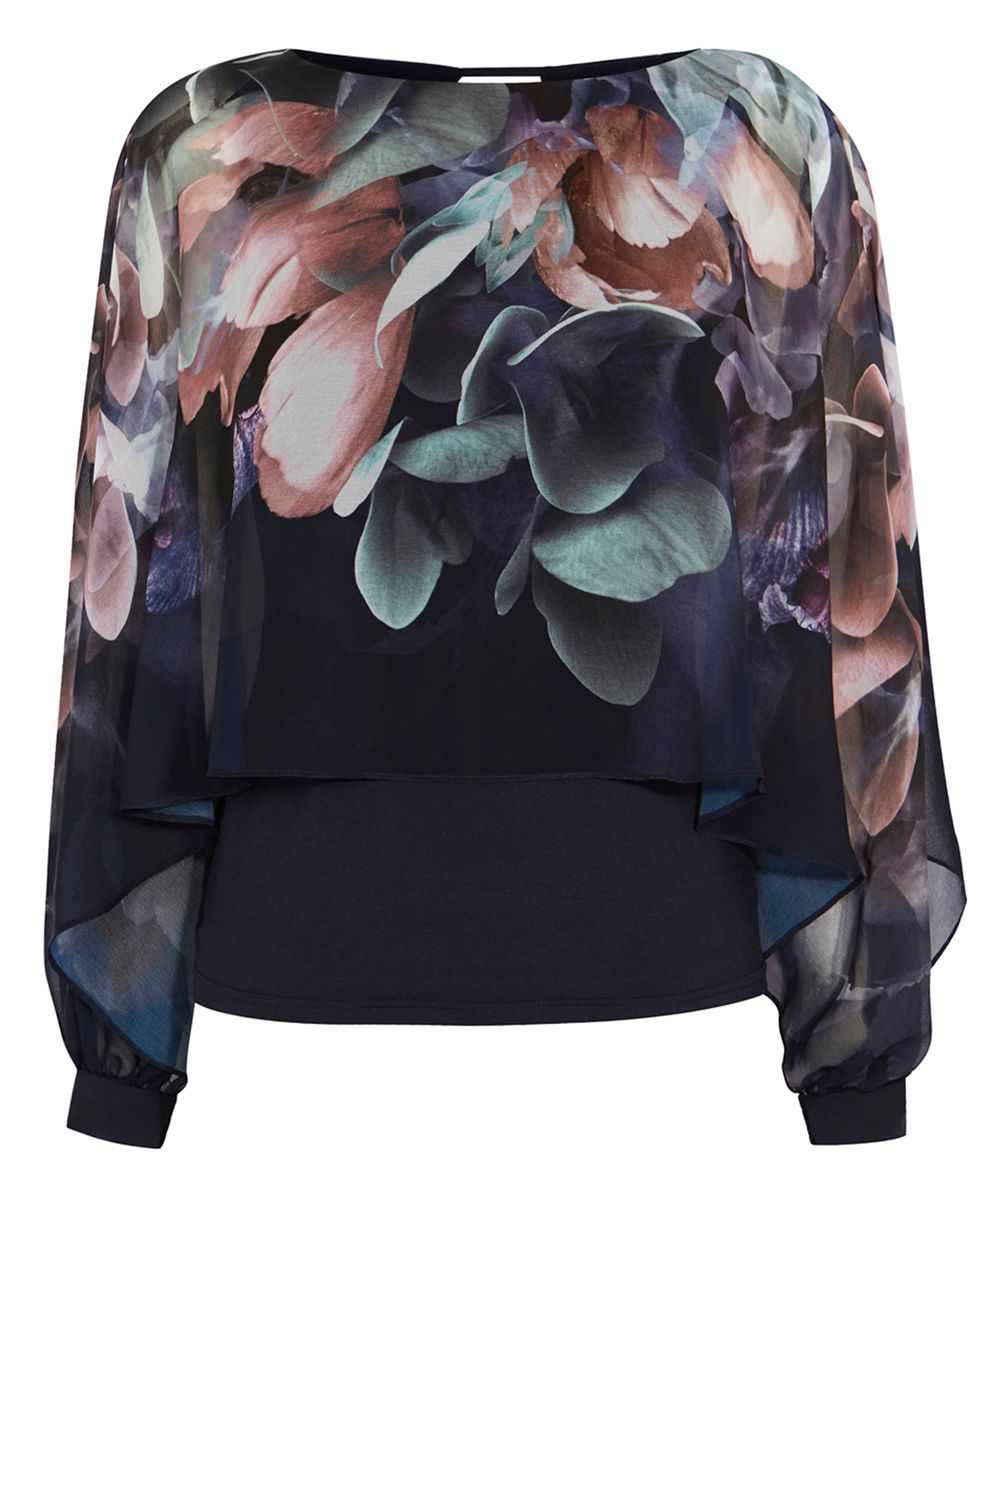 Coast Minnelli Print Overlay Top, Multi-Coloured